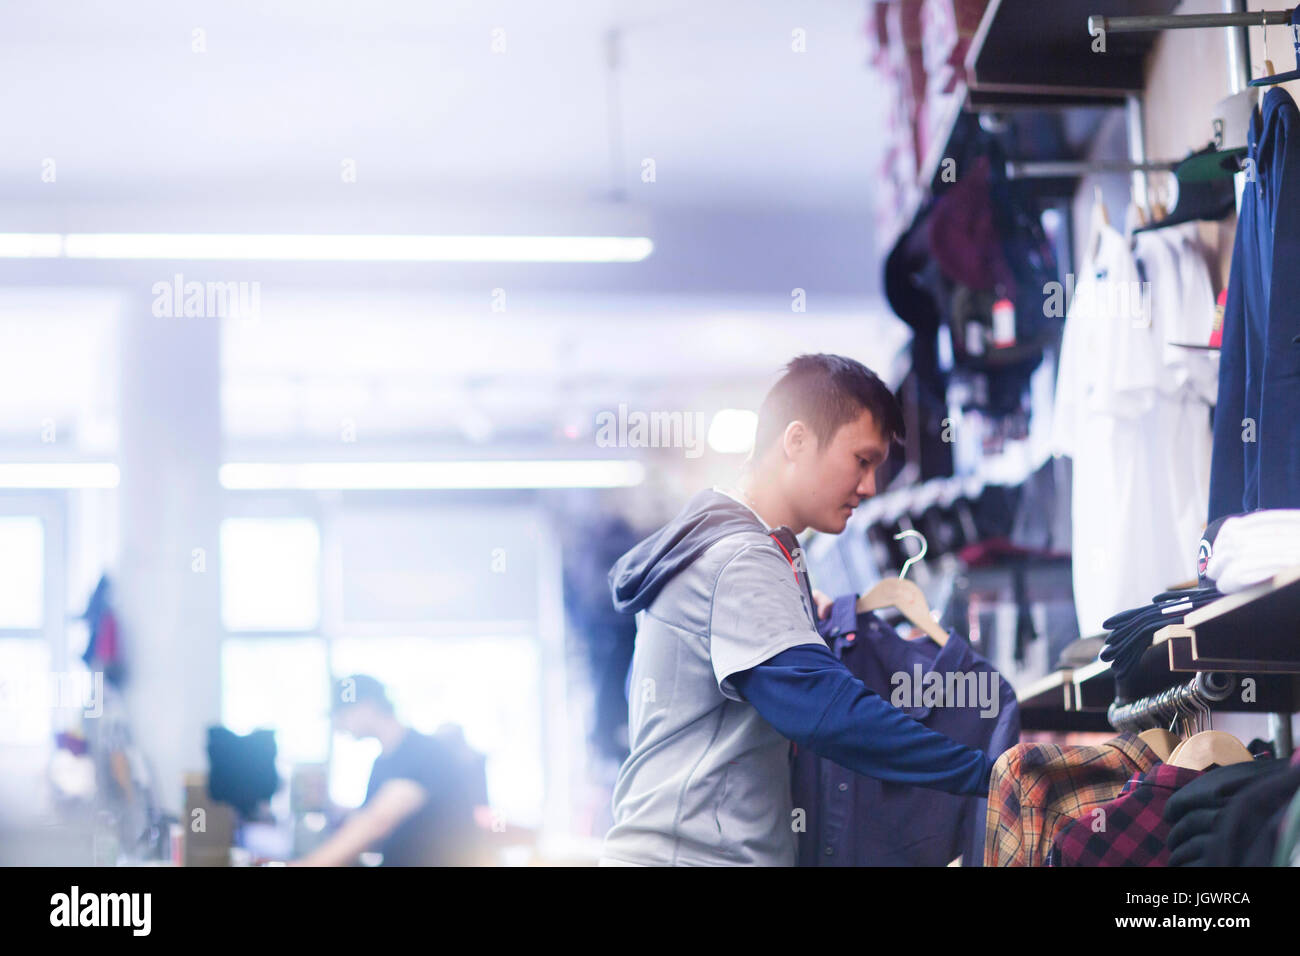 shopping sport stock photos shopping sport stock images alamy. Black Bedroom Furniture Sets. Home Design Ideas